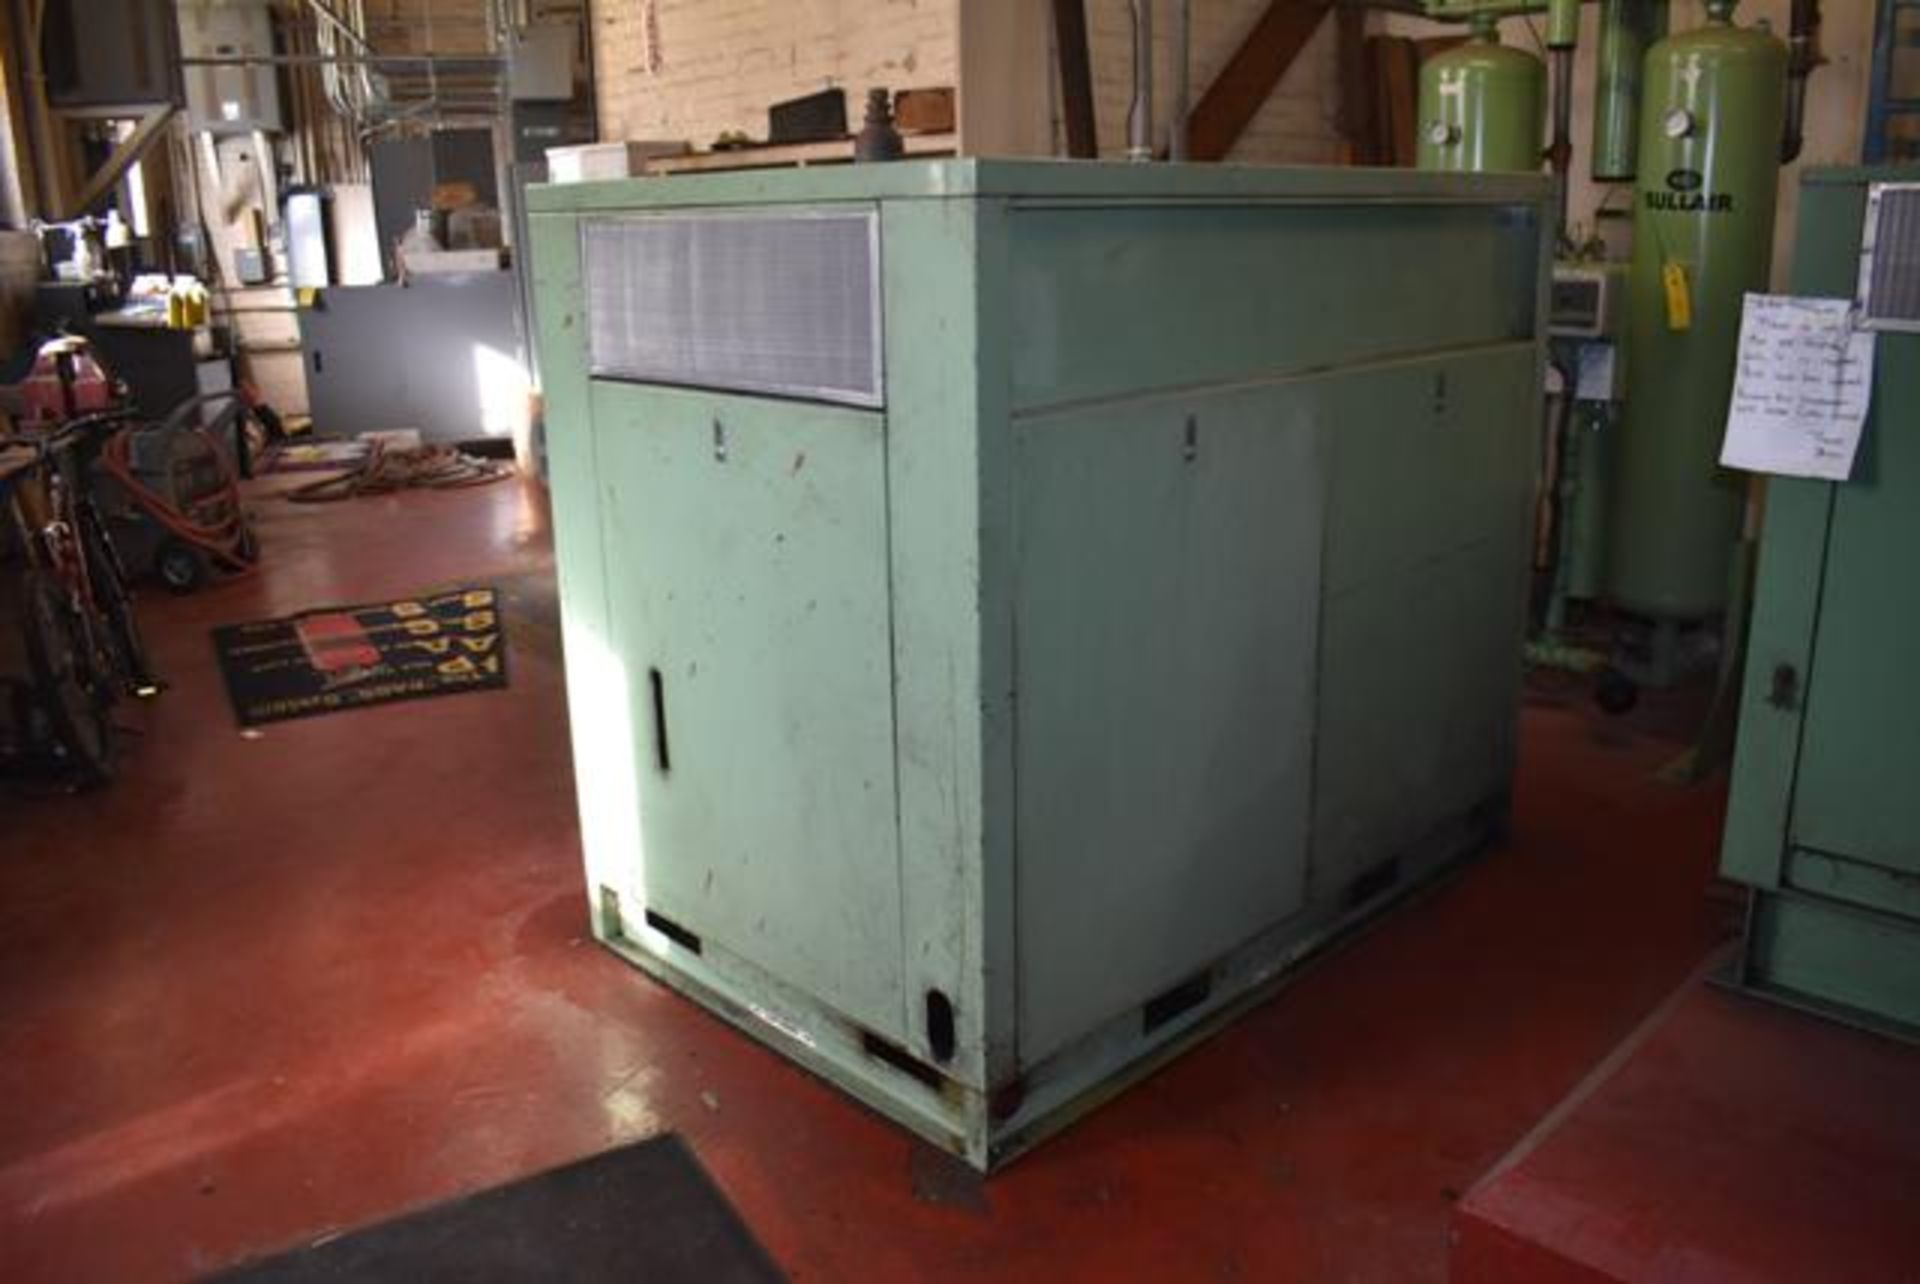 Lot 339 - Sullair Model #LS-16 Rotary Screw Air Compressor, 75 HP Motor, 81329 Hrs. Indicated